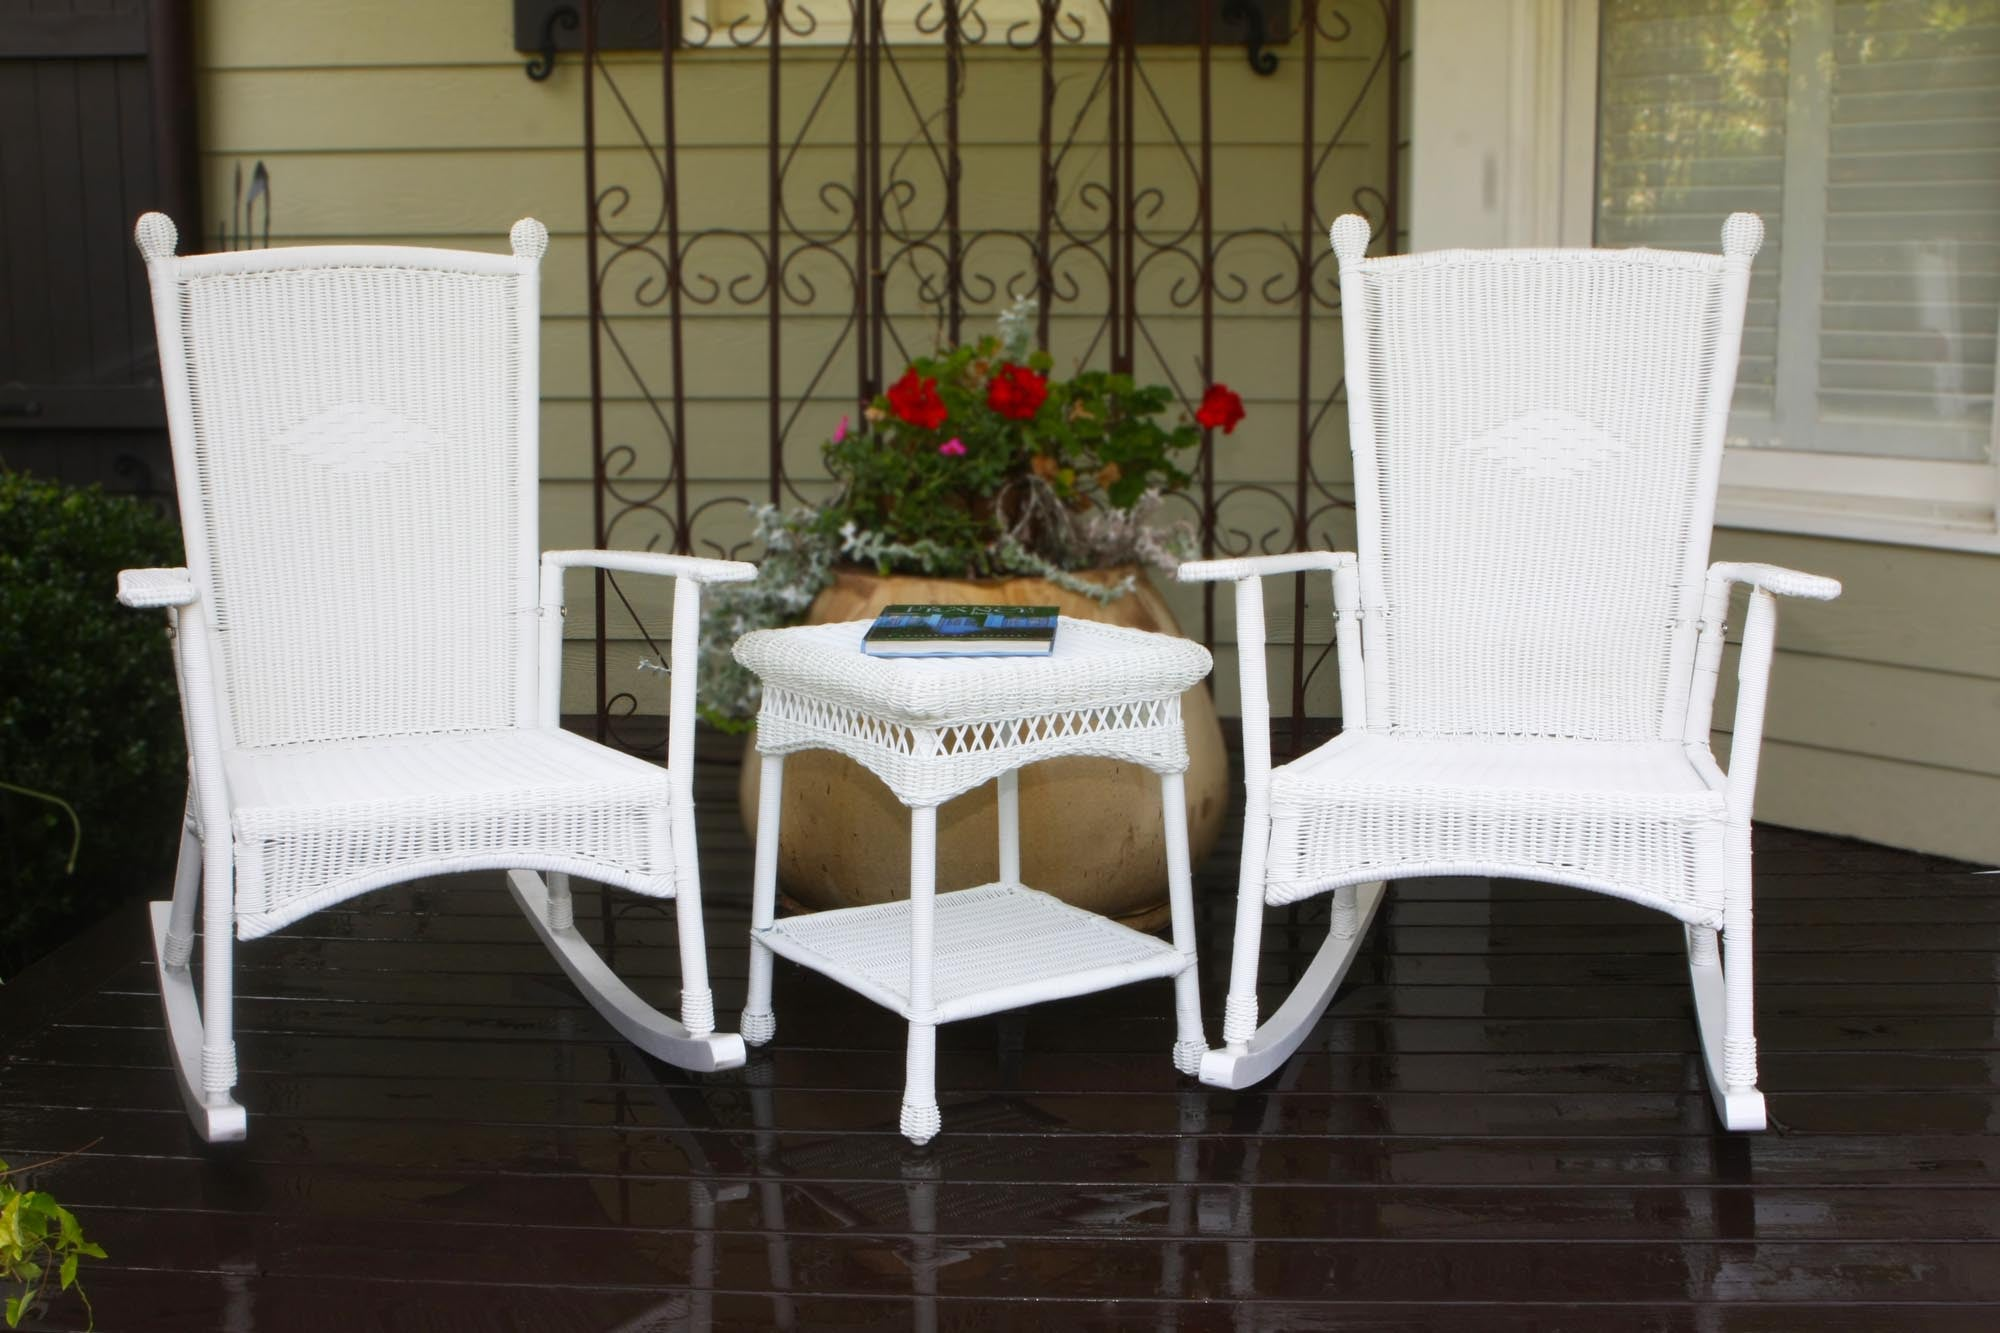 Ordinaire The Portside Classic All Weather Wicker Rocking Chair Set   Tortuga Outdoor  ...